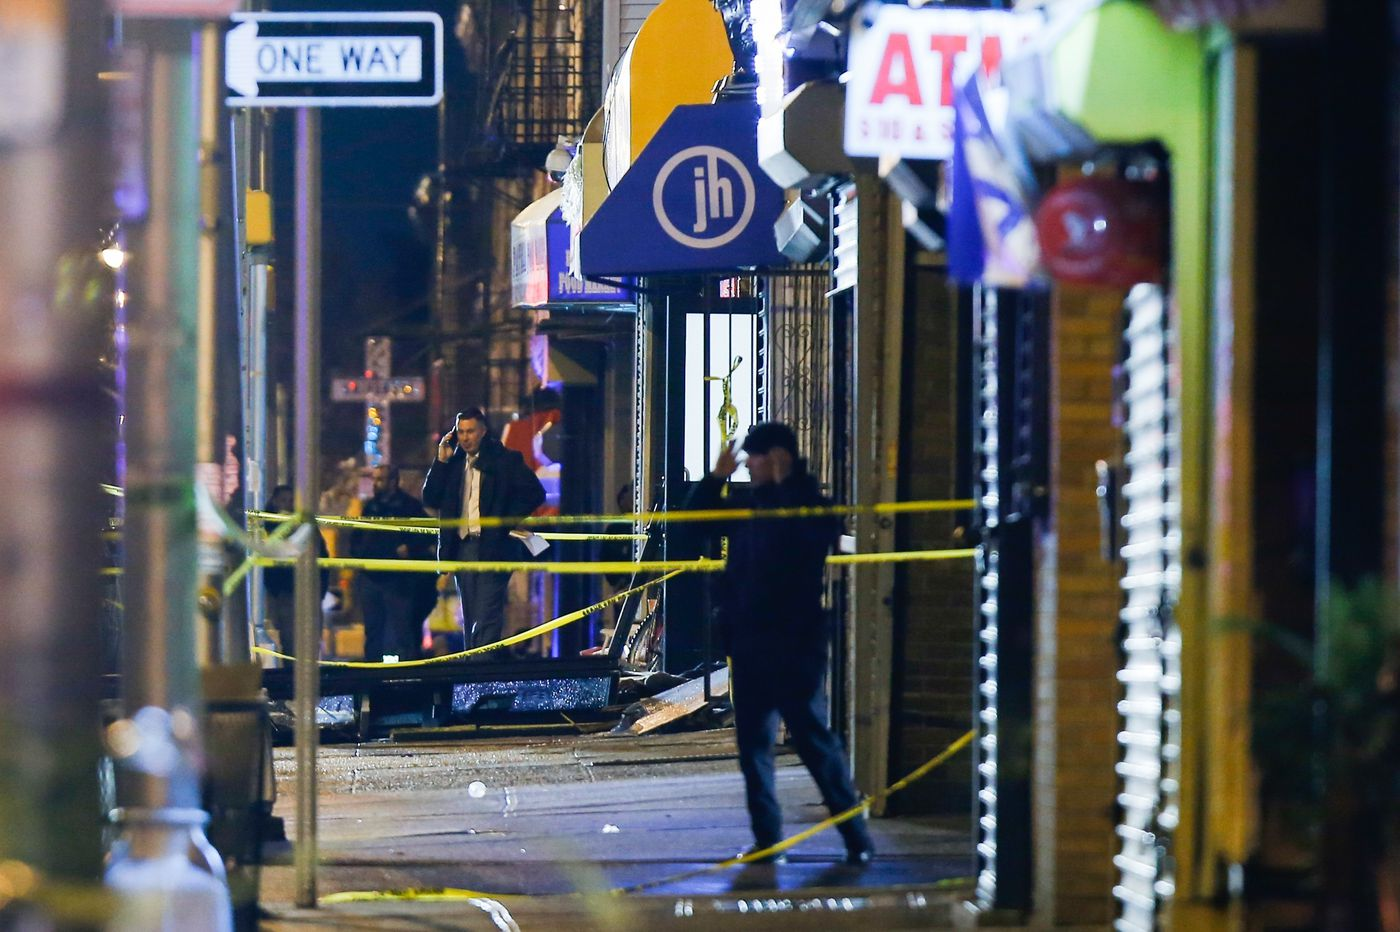 Jersey City Mayor Steven Fulop says gunmen targeted kosher market